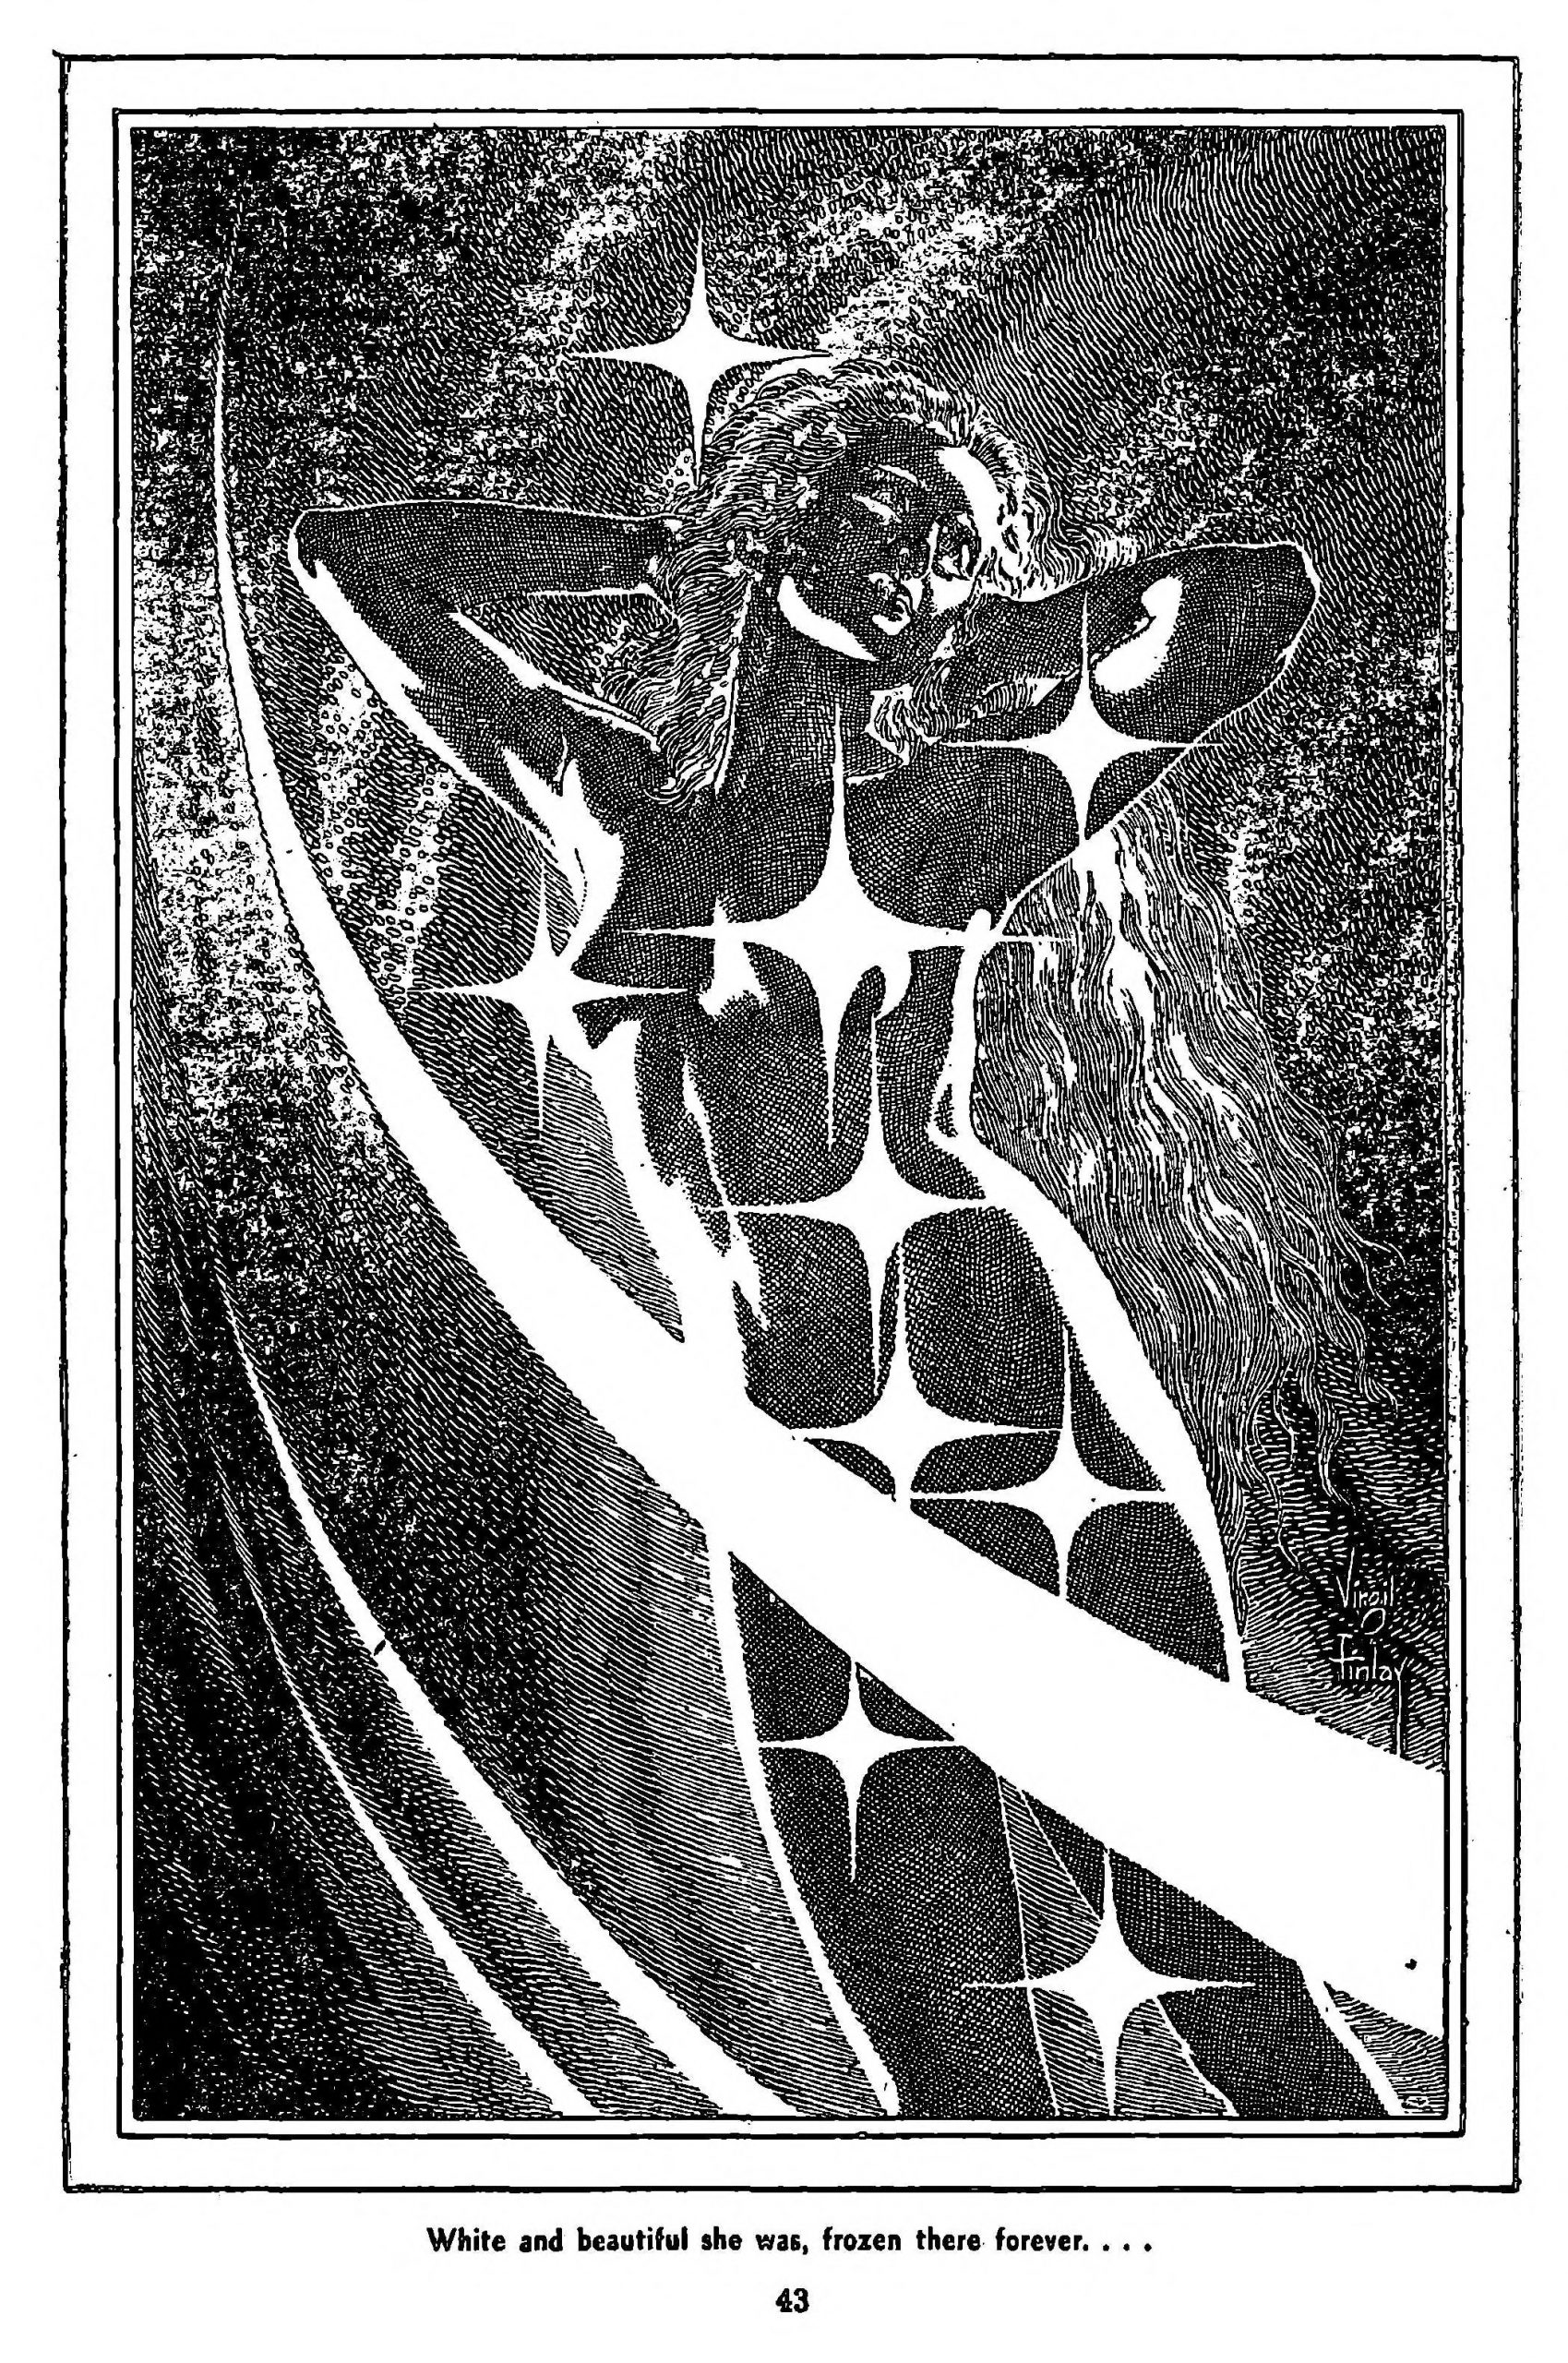 A nude woman encased in ice, as illustrated by Virgil Finlay.